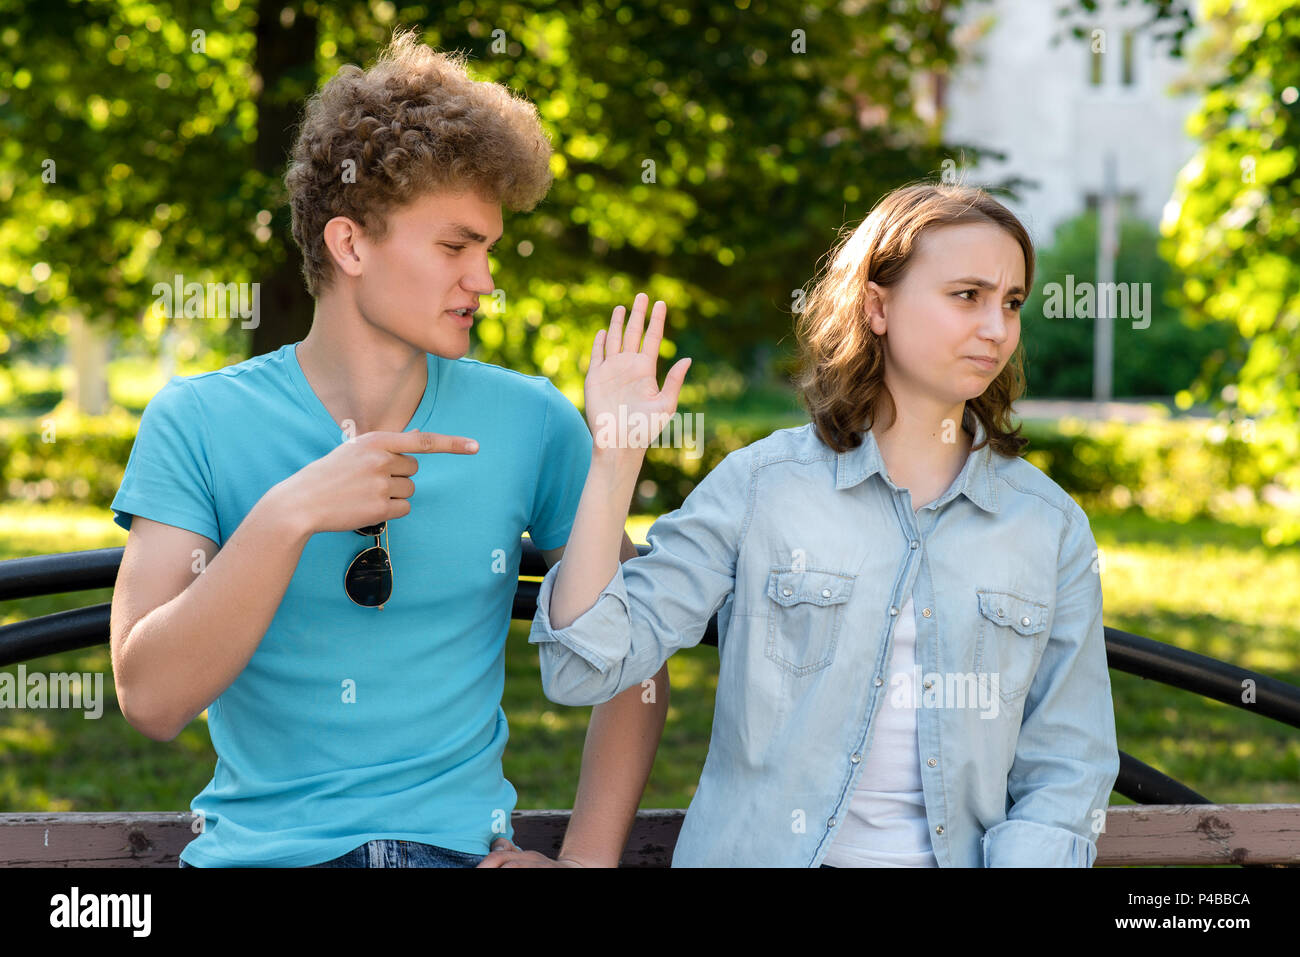 Young married couple. In summer in the park in nature. The guy scolds the girl. Emotions of mistrust. Insults and insults in the relationship. Problems in family life. Concept scandal behavior. - Stock Image